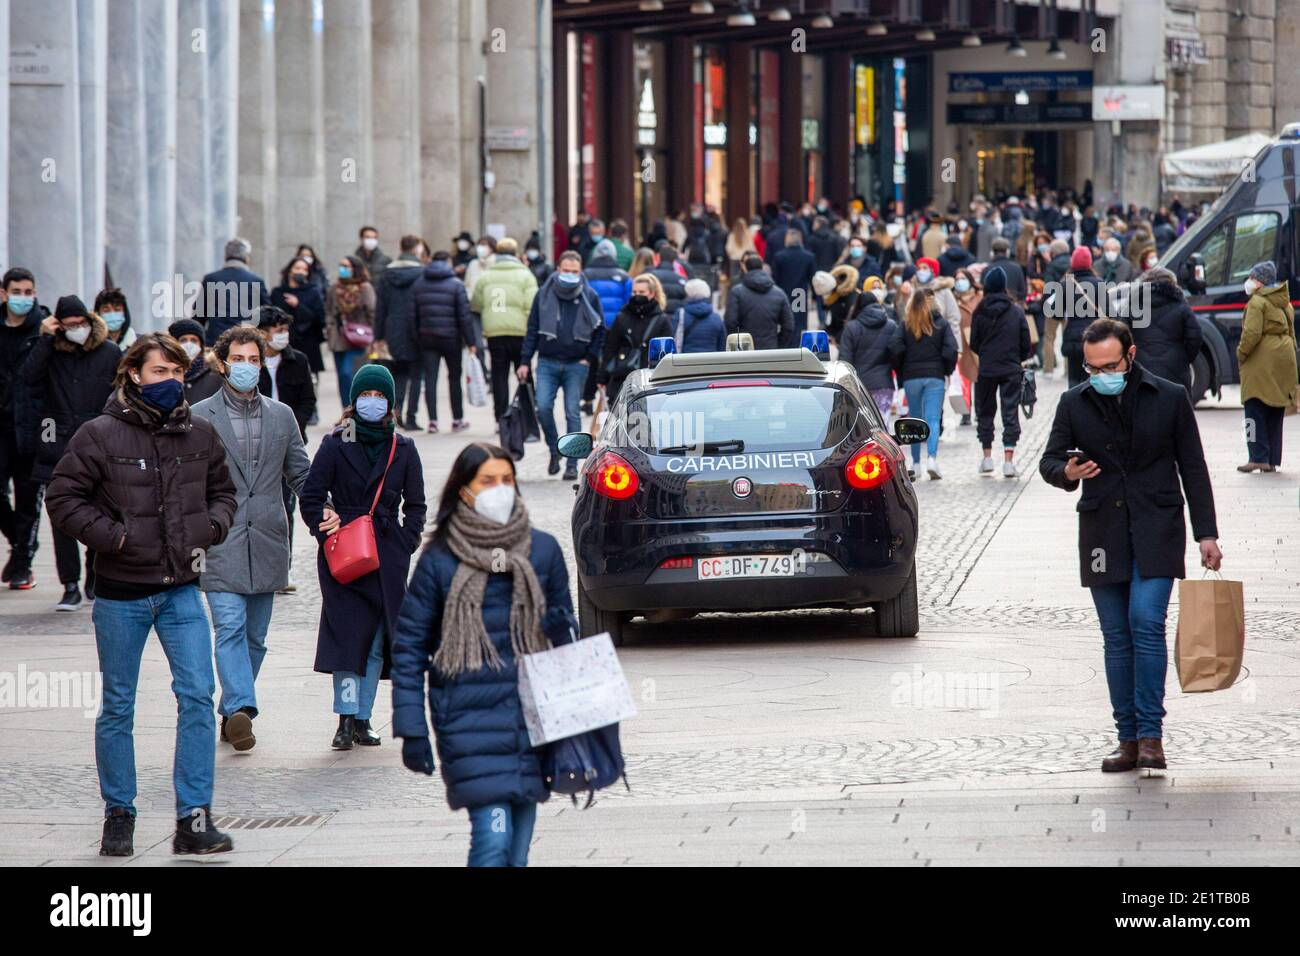 Milan, Italy. 09th Jan, 2021. Milan, orange area, crowds and shopping in the center for the first Saturday of winter sales Editorial Usage Only Credit: Independent Photo Agency/Alamy Live News Stock Photo